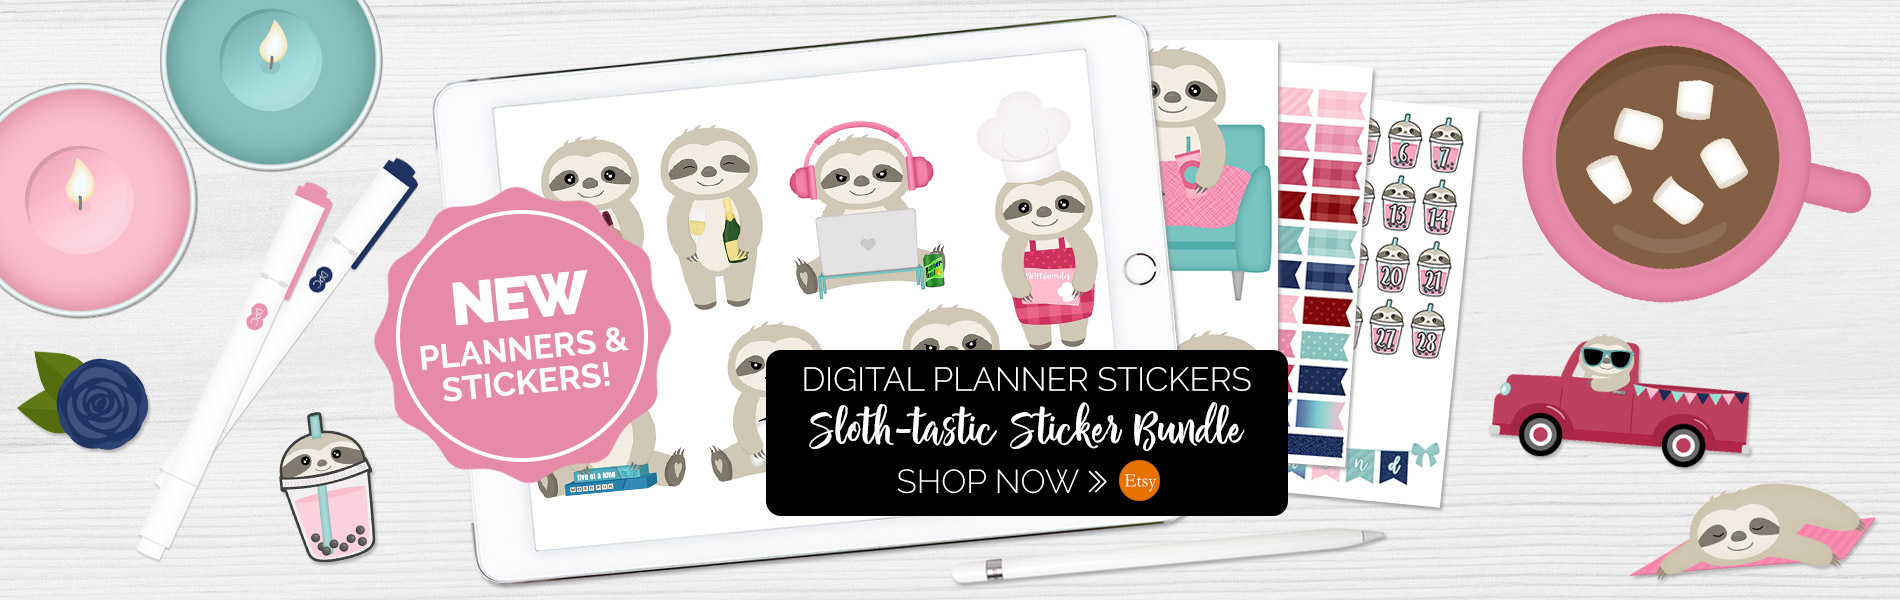 Slothtastic Digital Stickers | @DPCDigitals